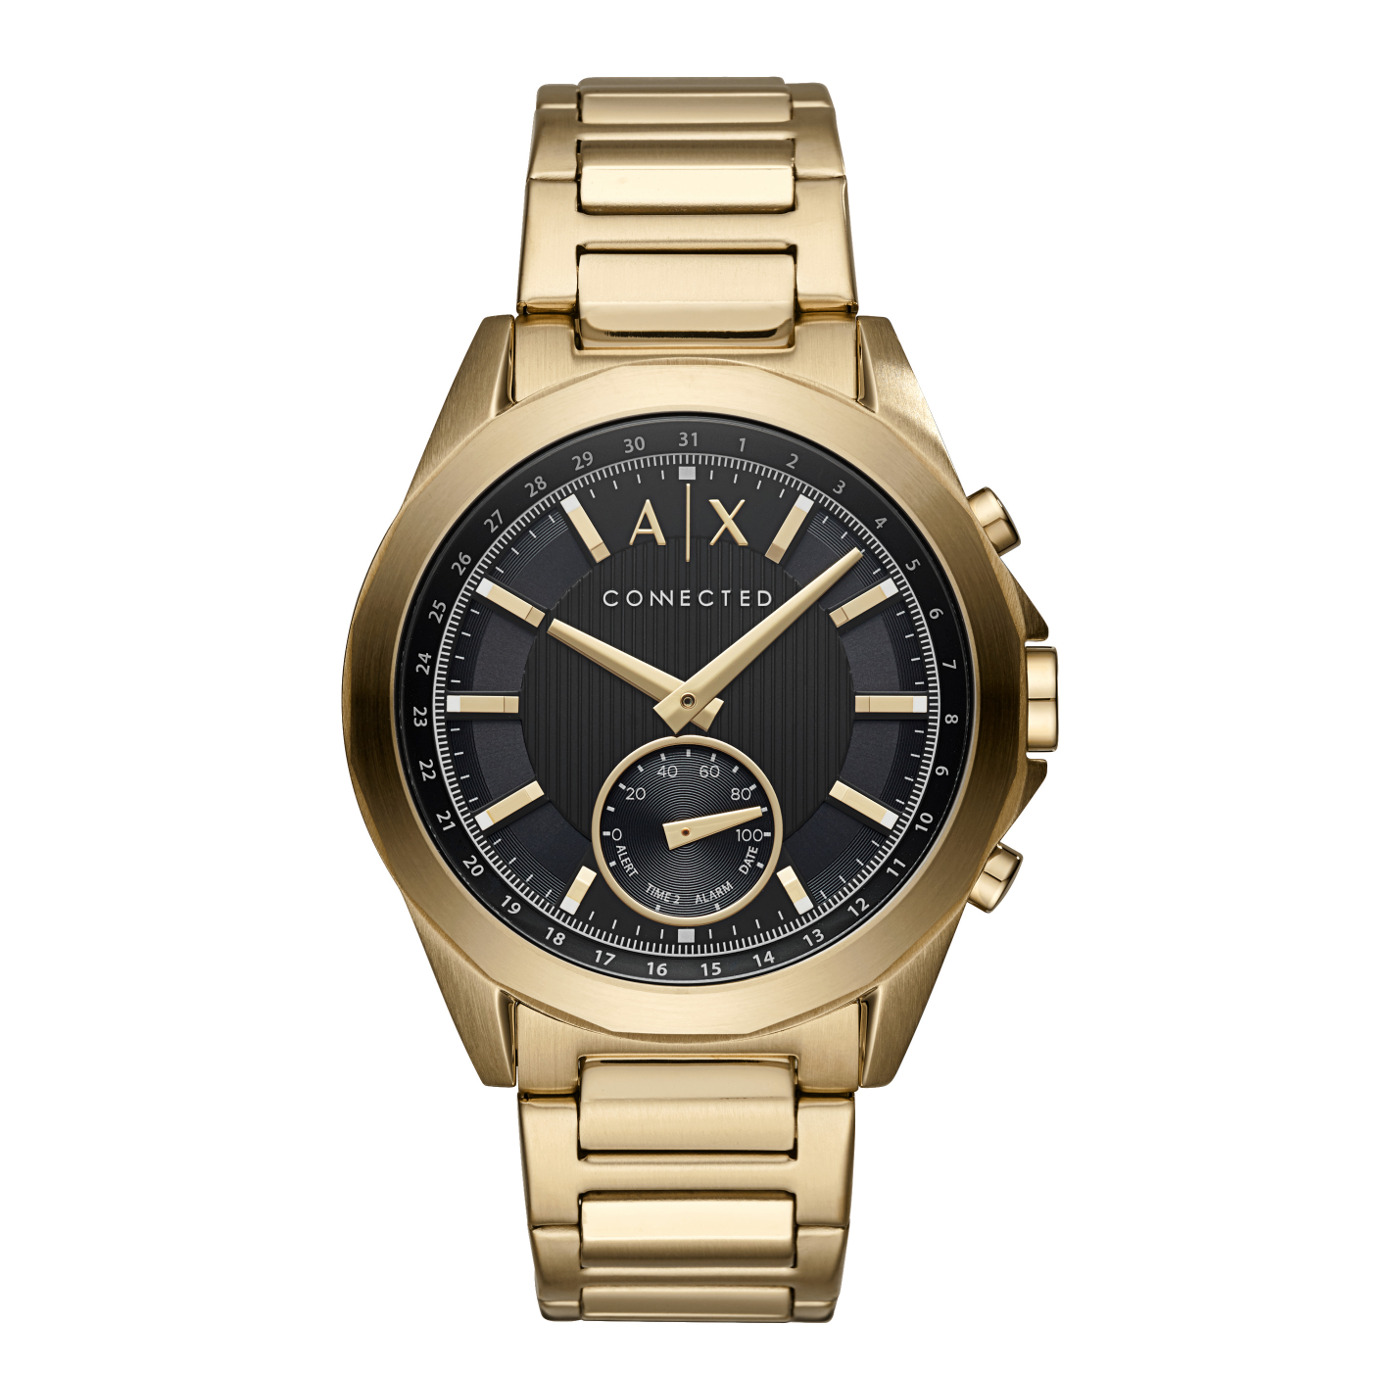 Immagine di Armani Exchange Connected watch AXT1008